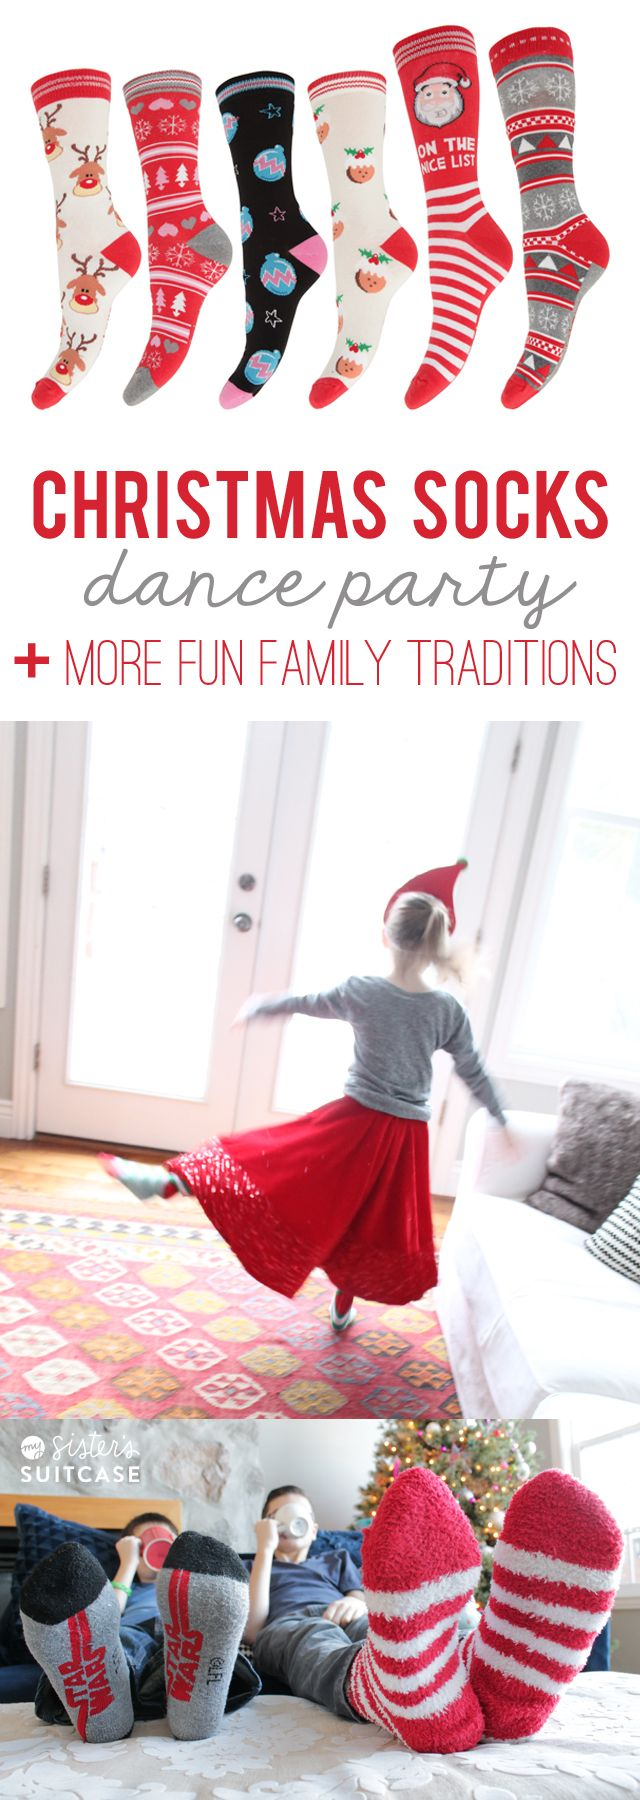 10 Fun Family Christmas Traditions and our favorite hot chocolate #ad